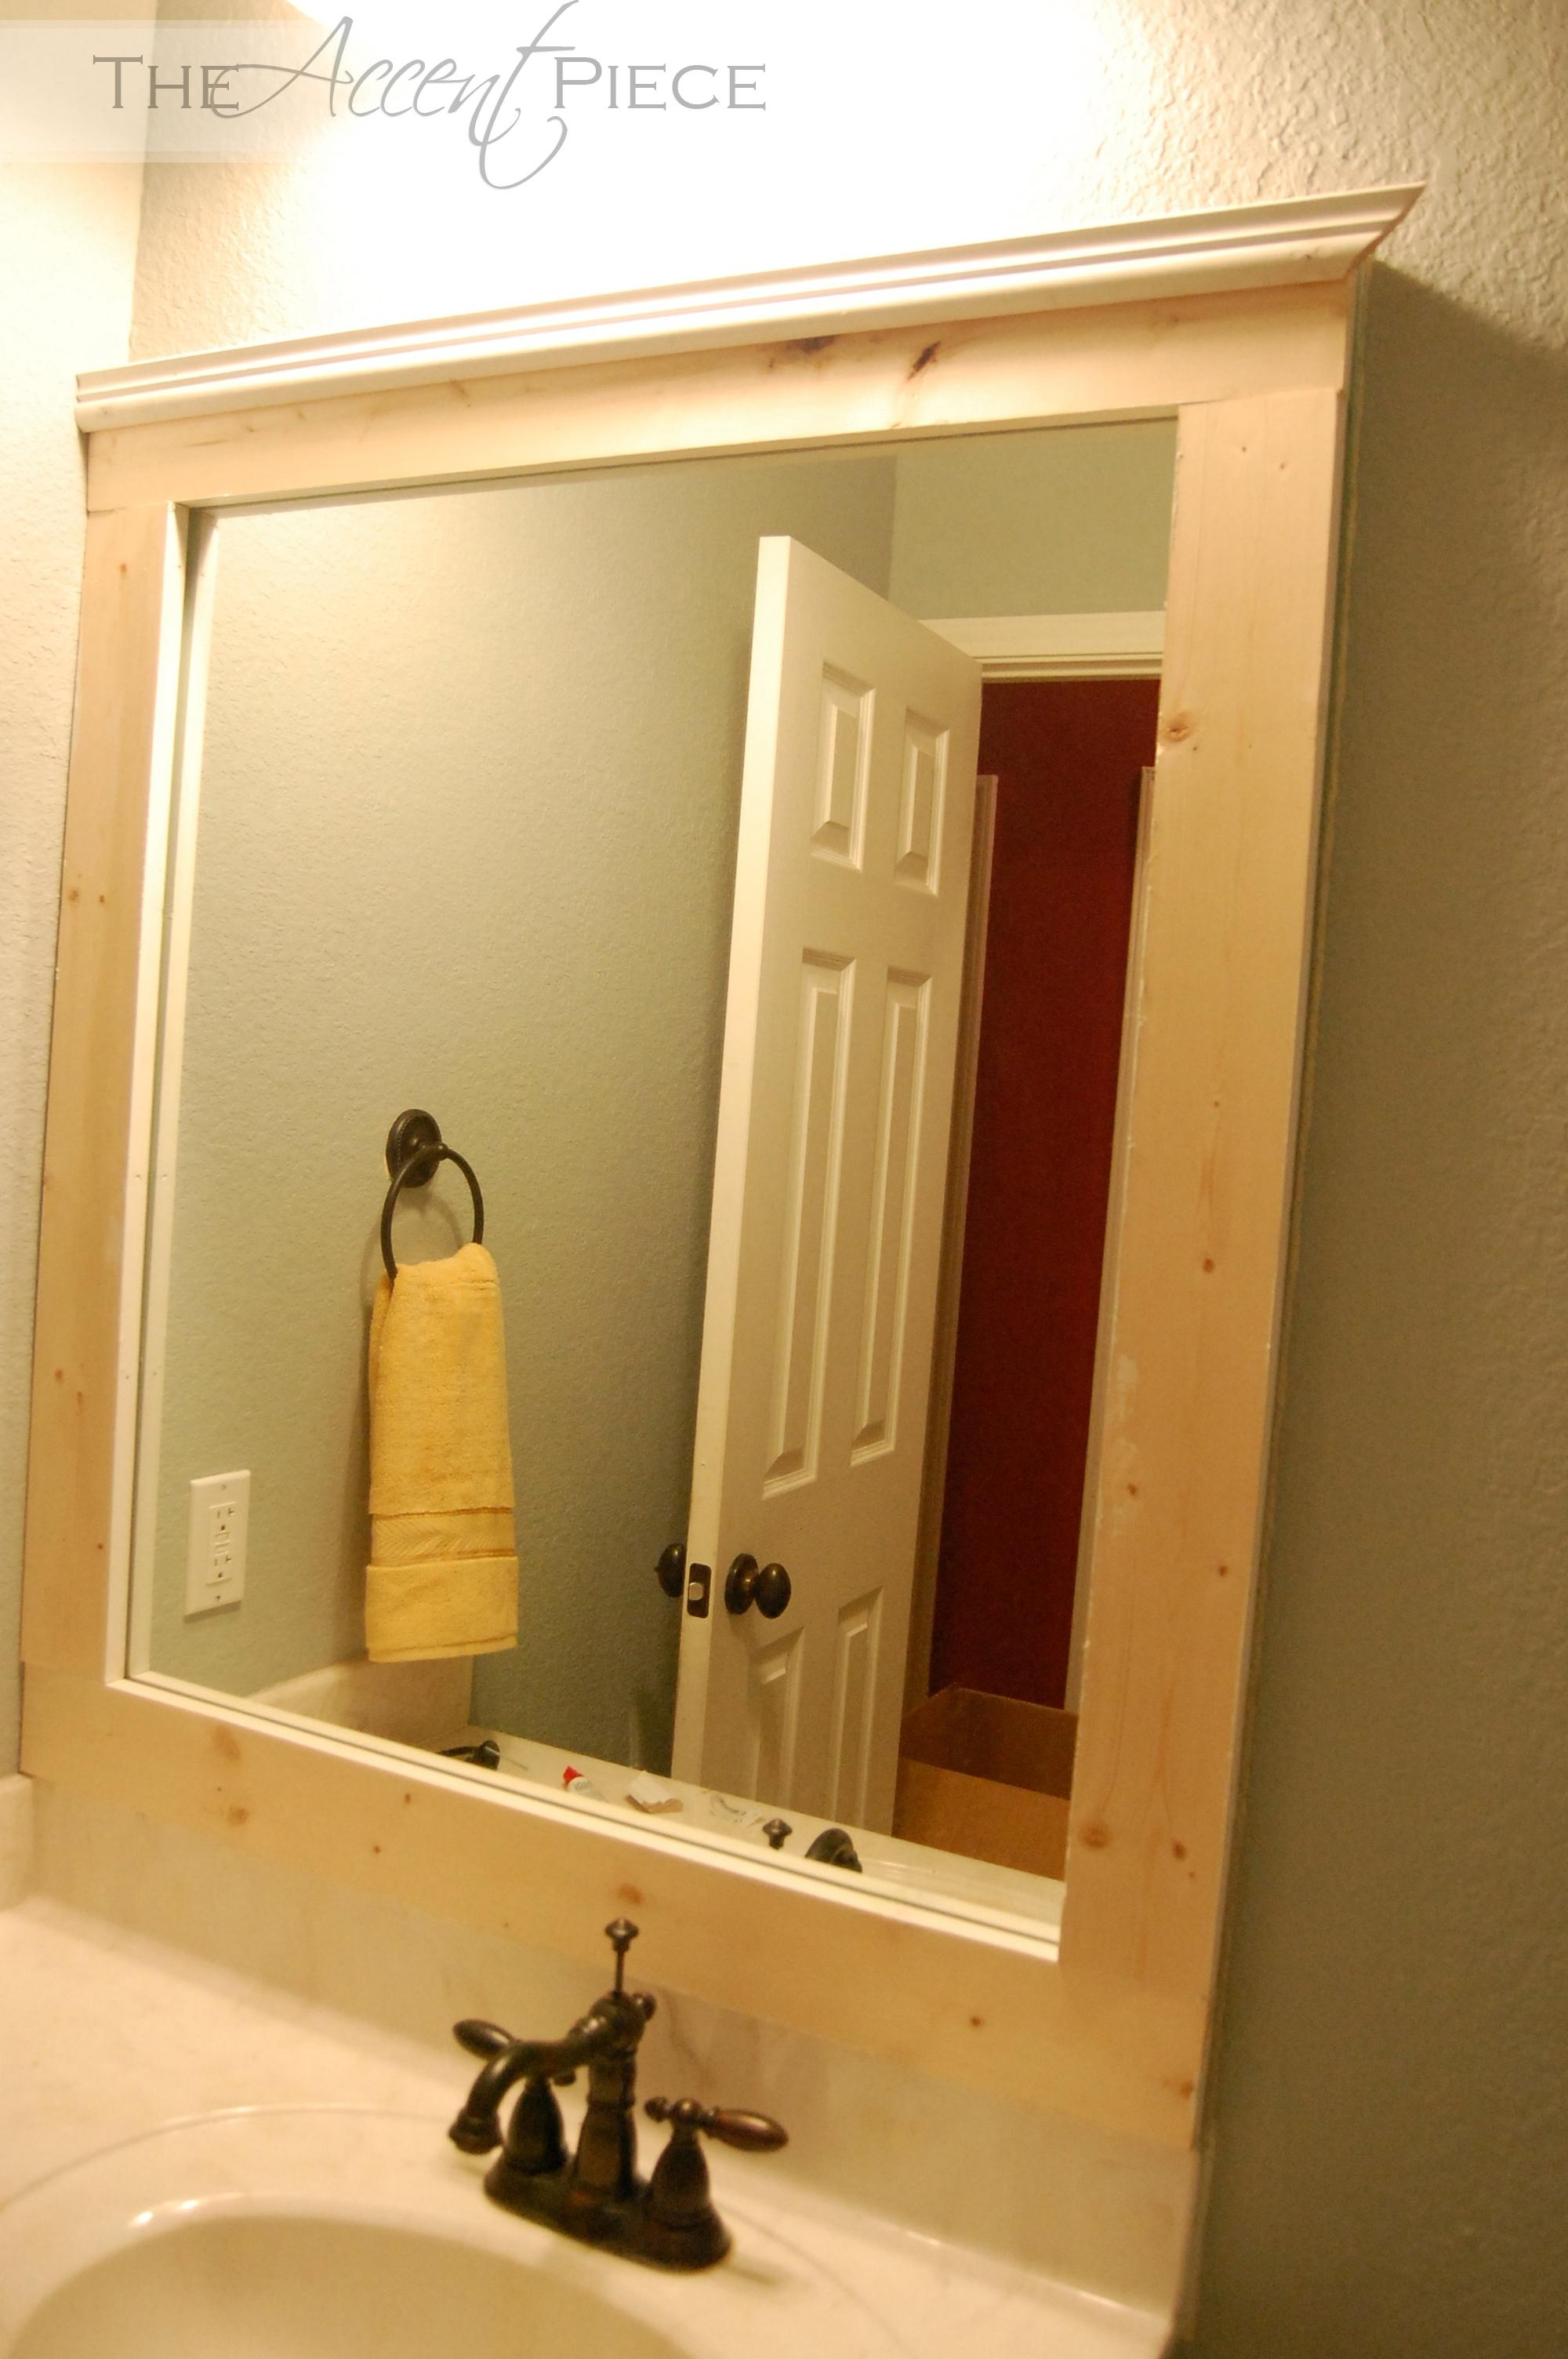 Custom Bathroom Mirrors Framed – Tables Blog | Tables Blog With Custom Framed Mirrors Online (Image 6 of 20)